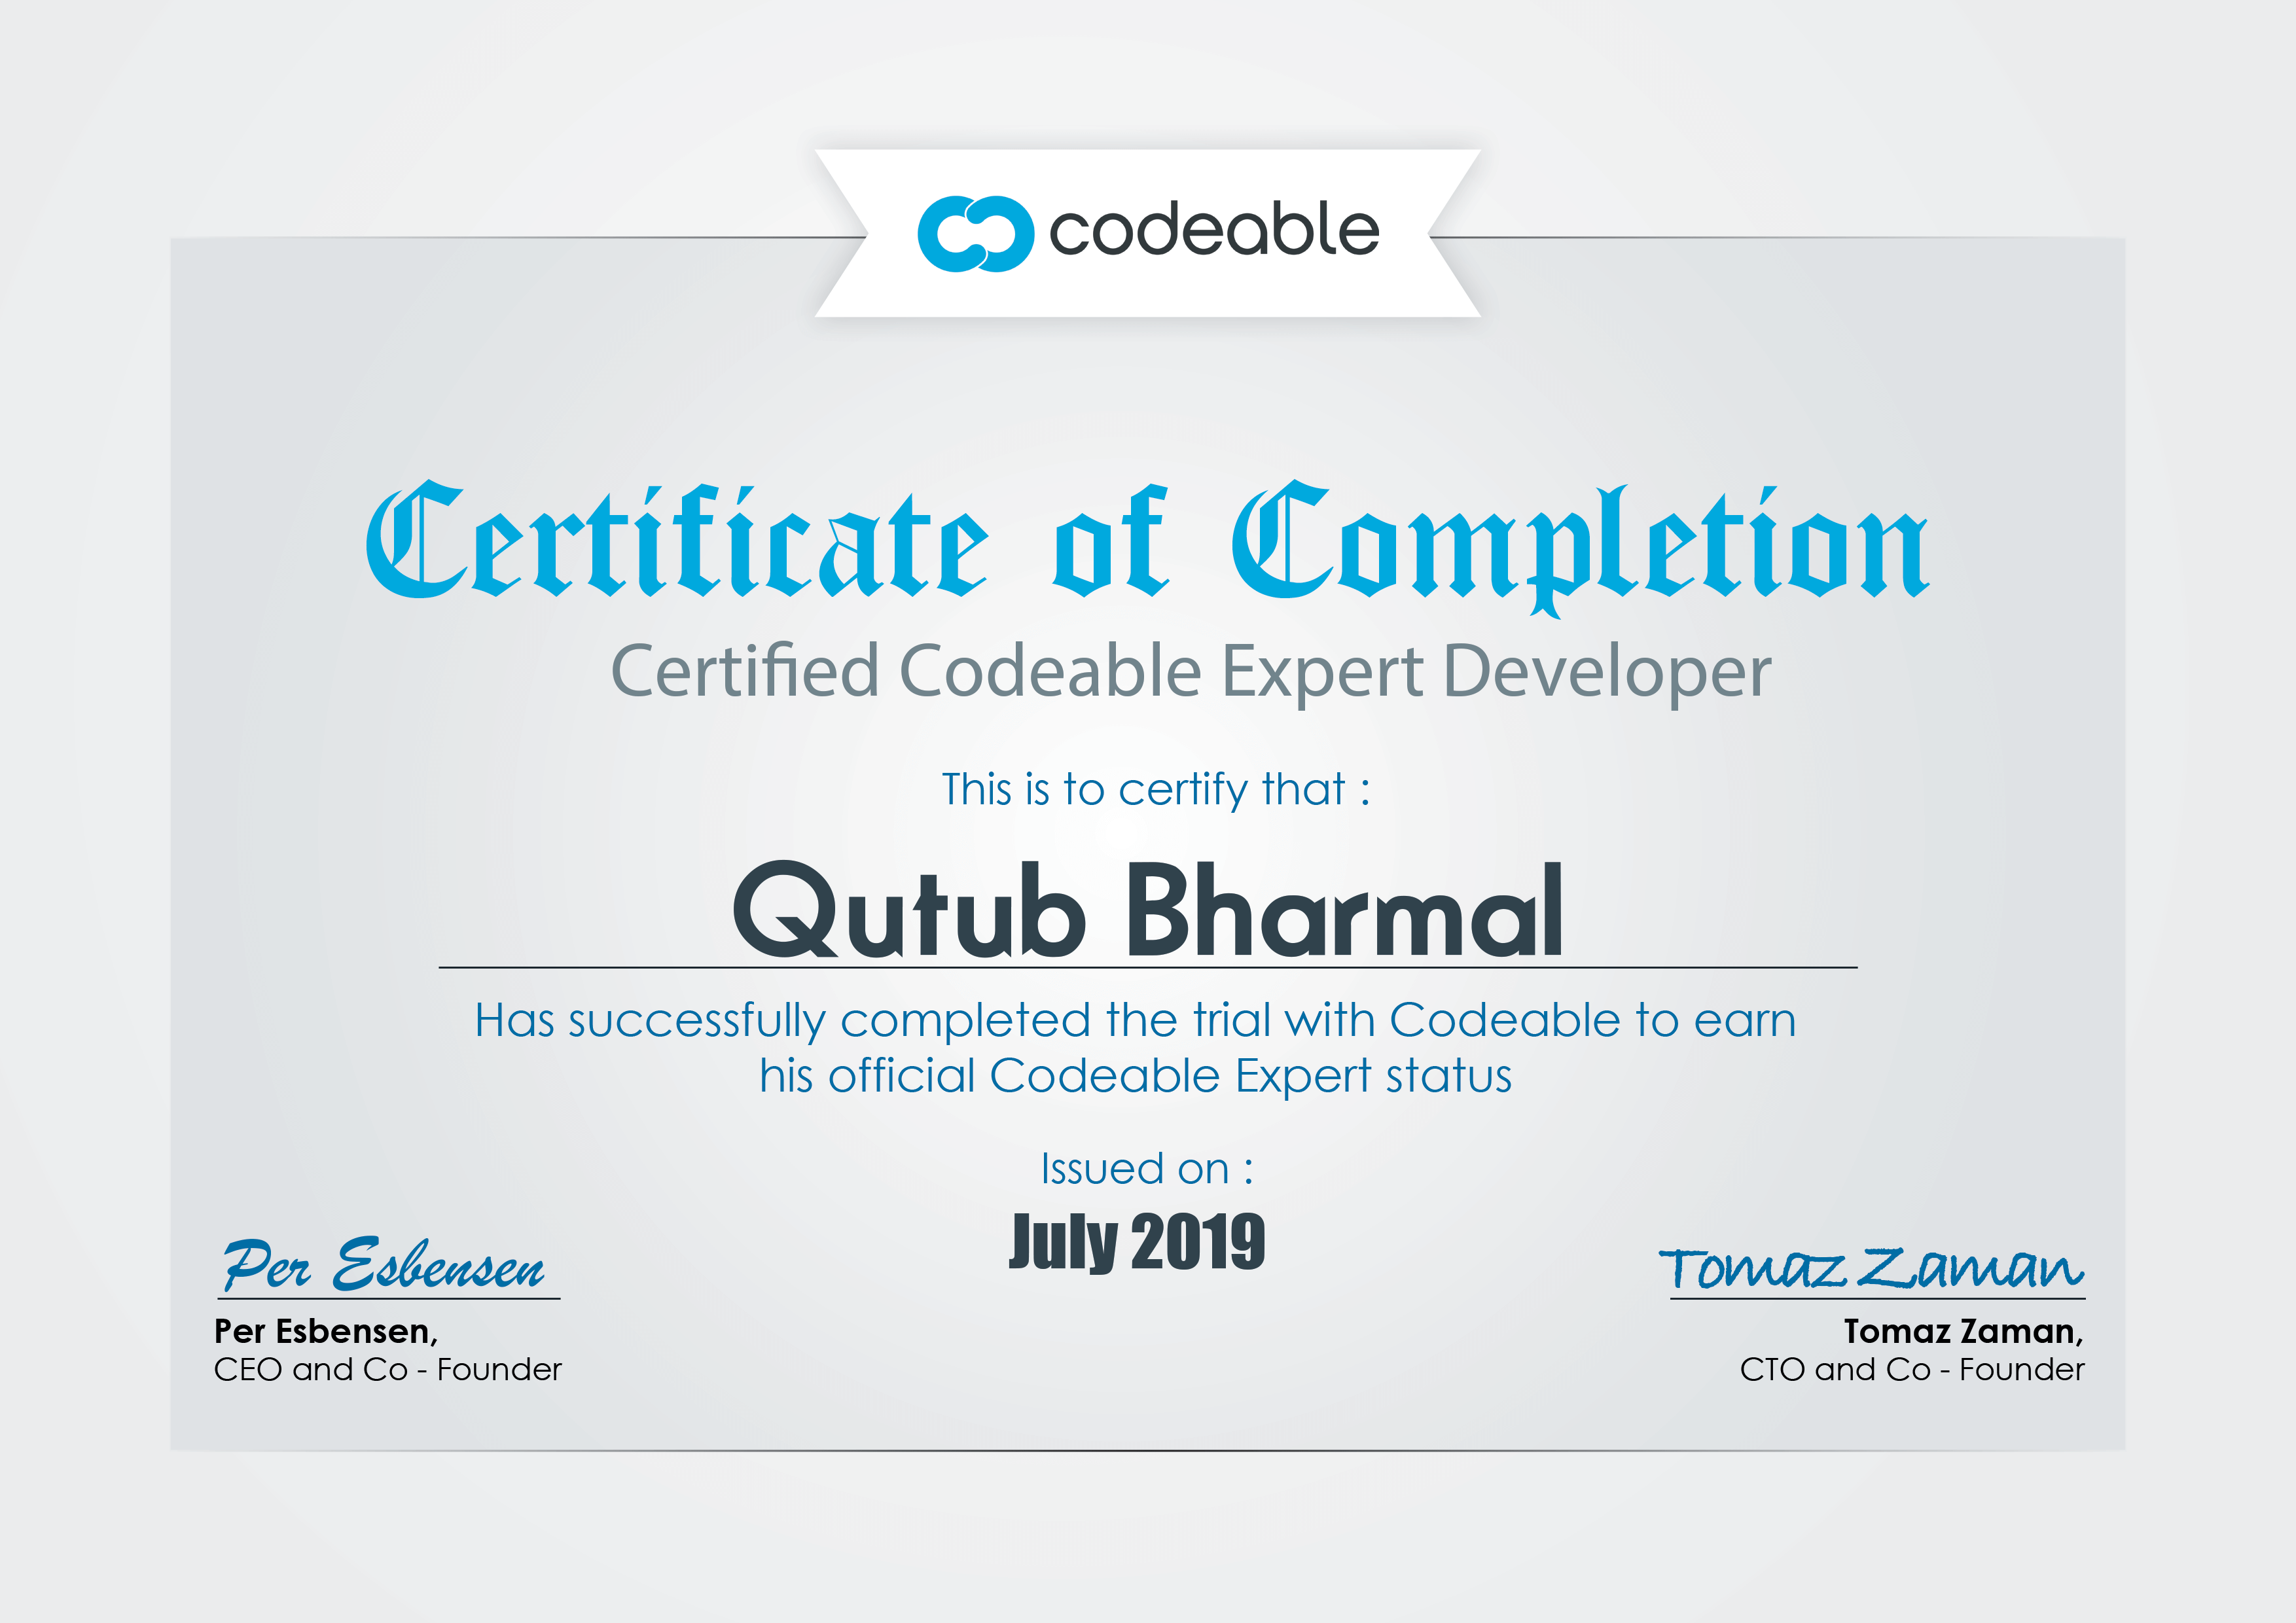 Codeable Certificate of Qutub Bharmal